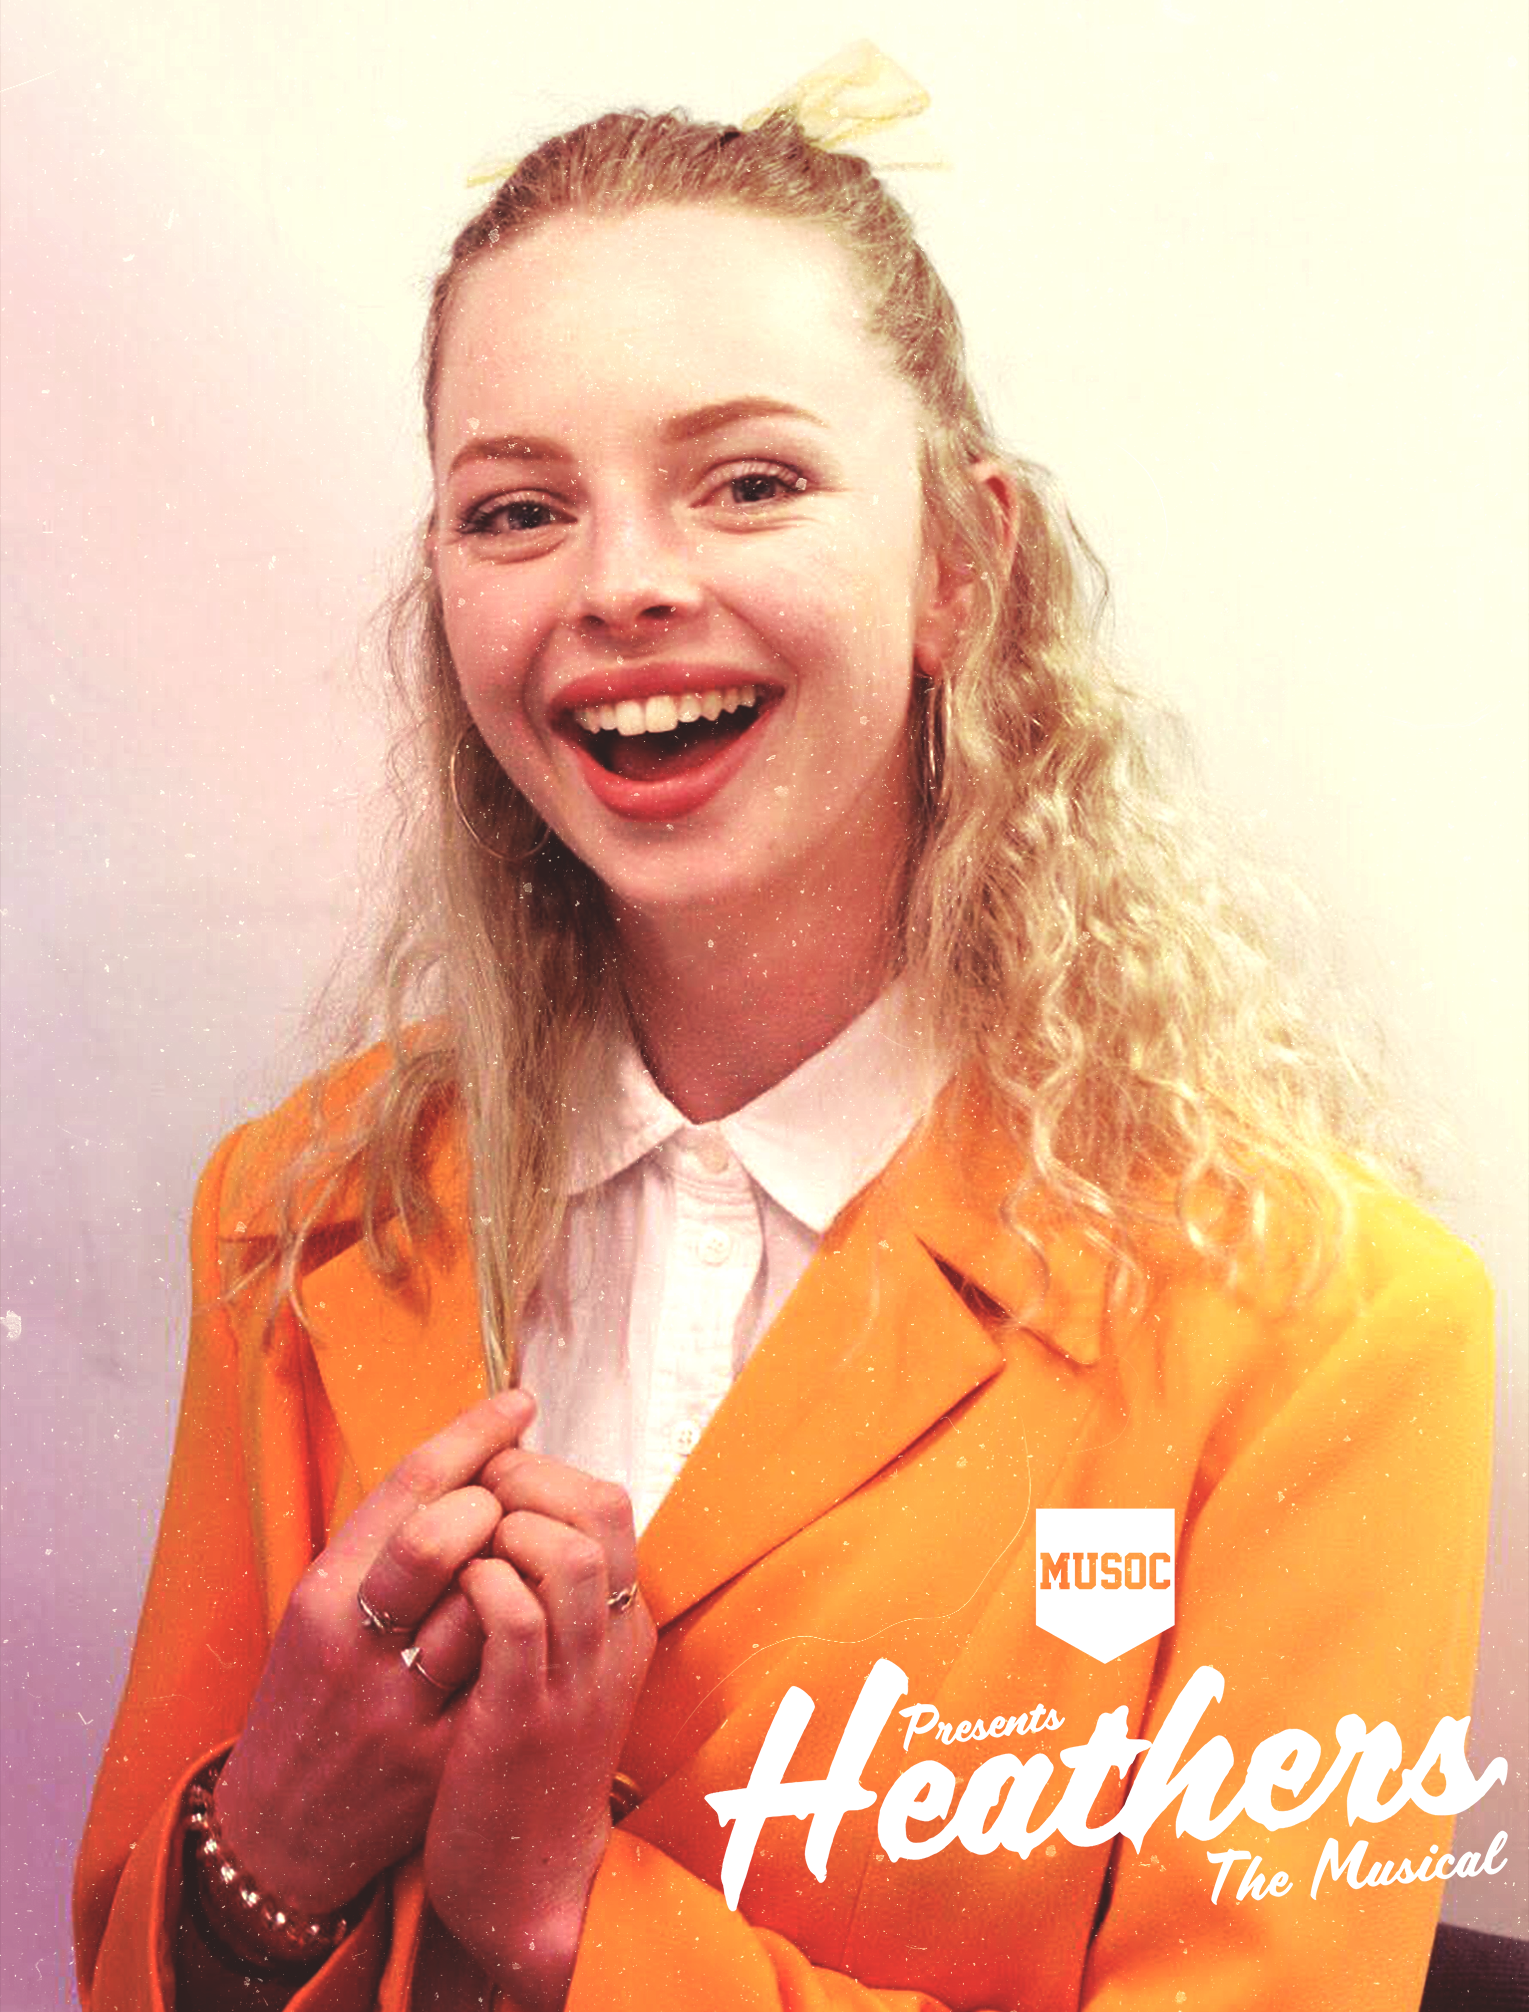 GEROGIA CHAPPLE - HEATHER MCNAMARA  After doing her fair share of theatre in Nelson, Georgia is now performing in her first MUSOC show in the role of Heather McNamara. She is in her first year of studying primary school teaching at UC and is very grateful to be a part of Heathers doing what she loves!